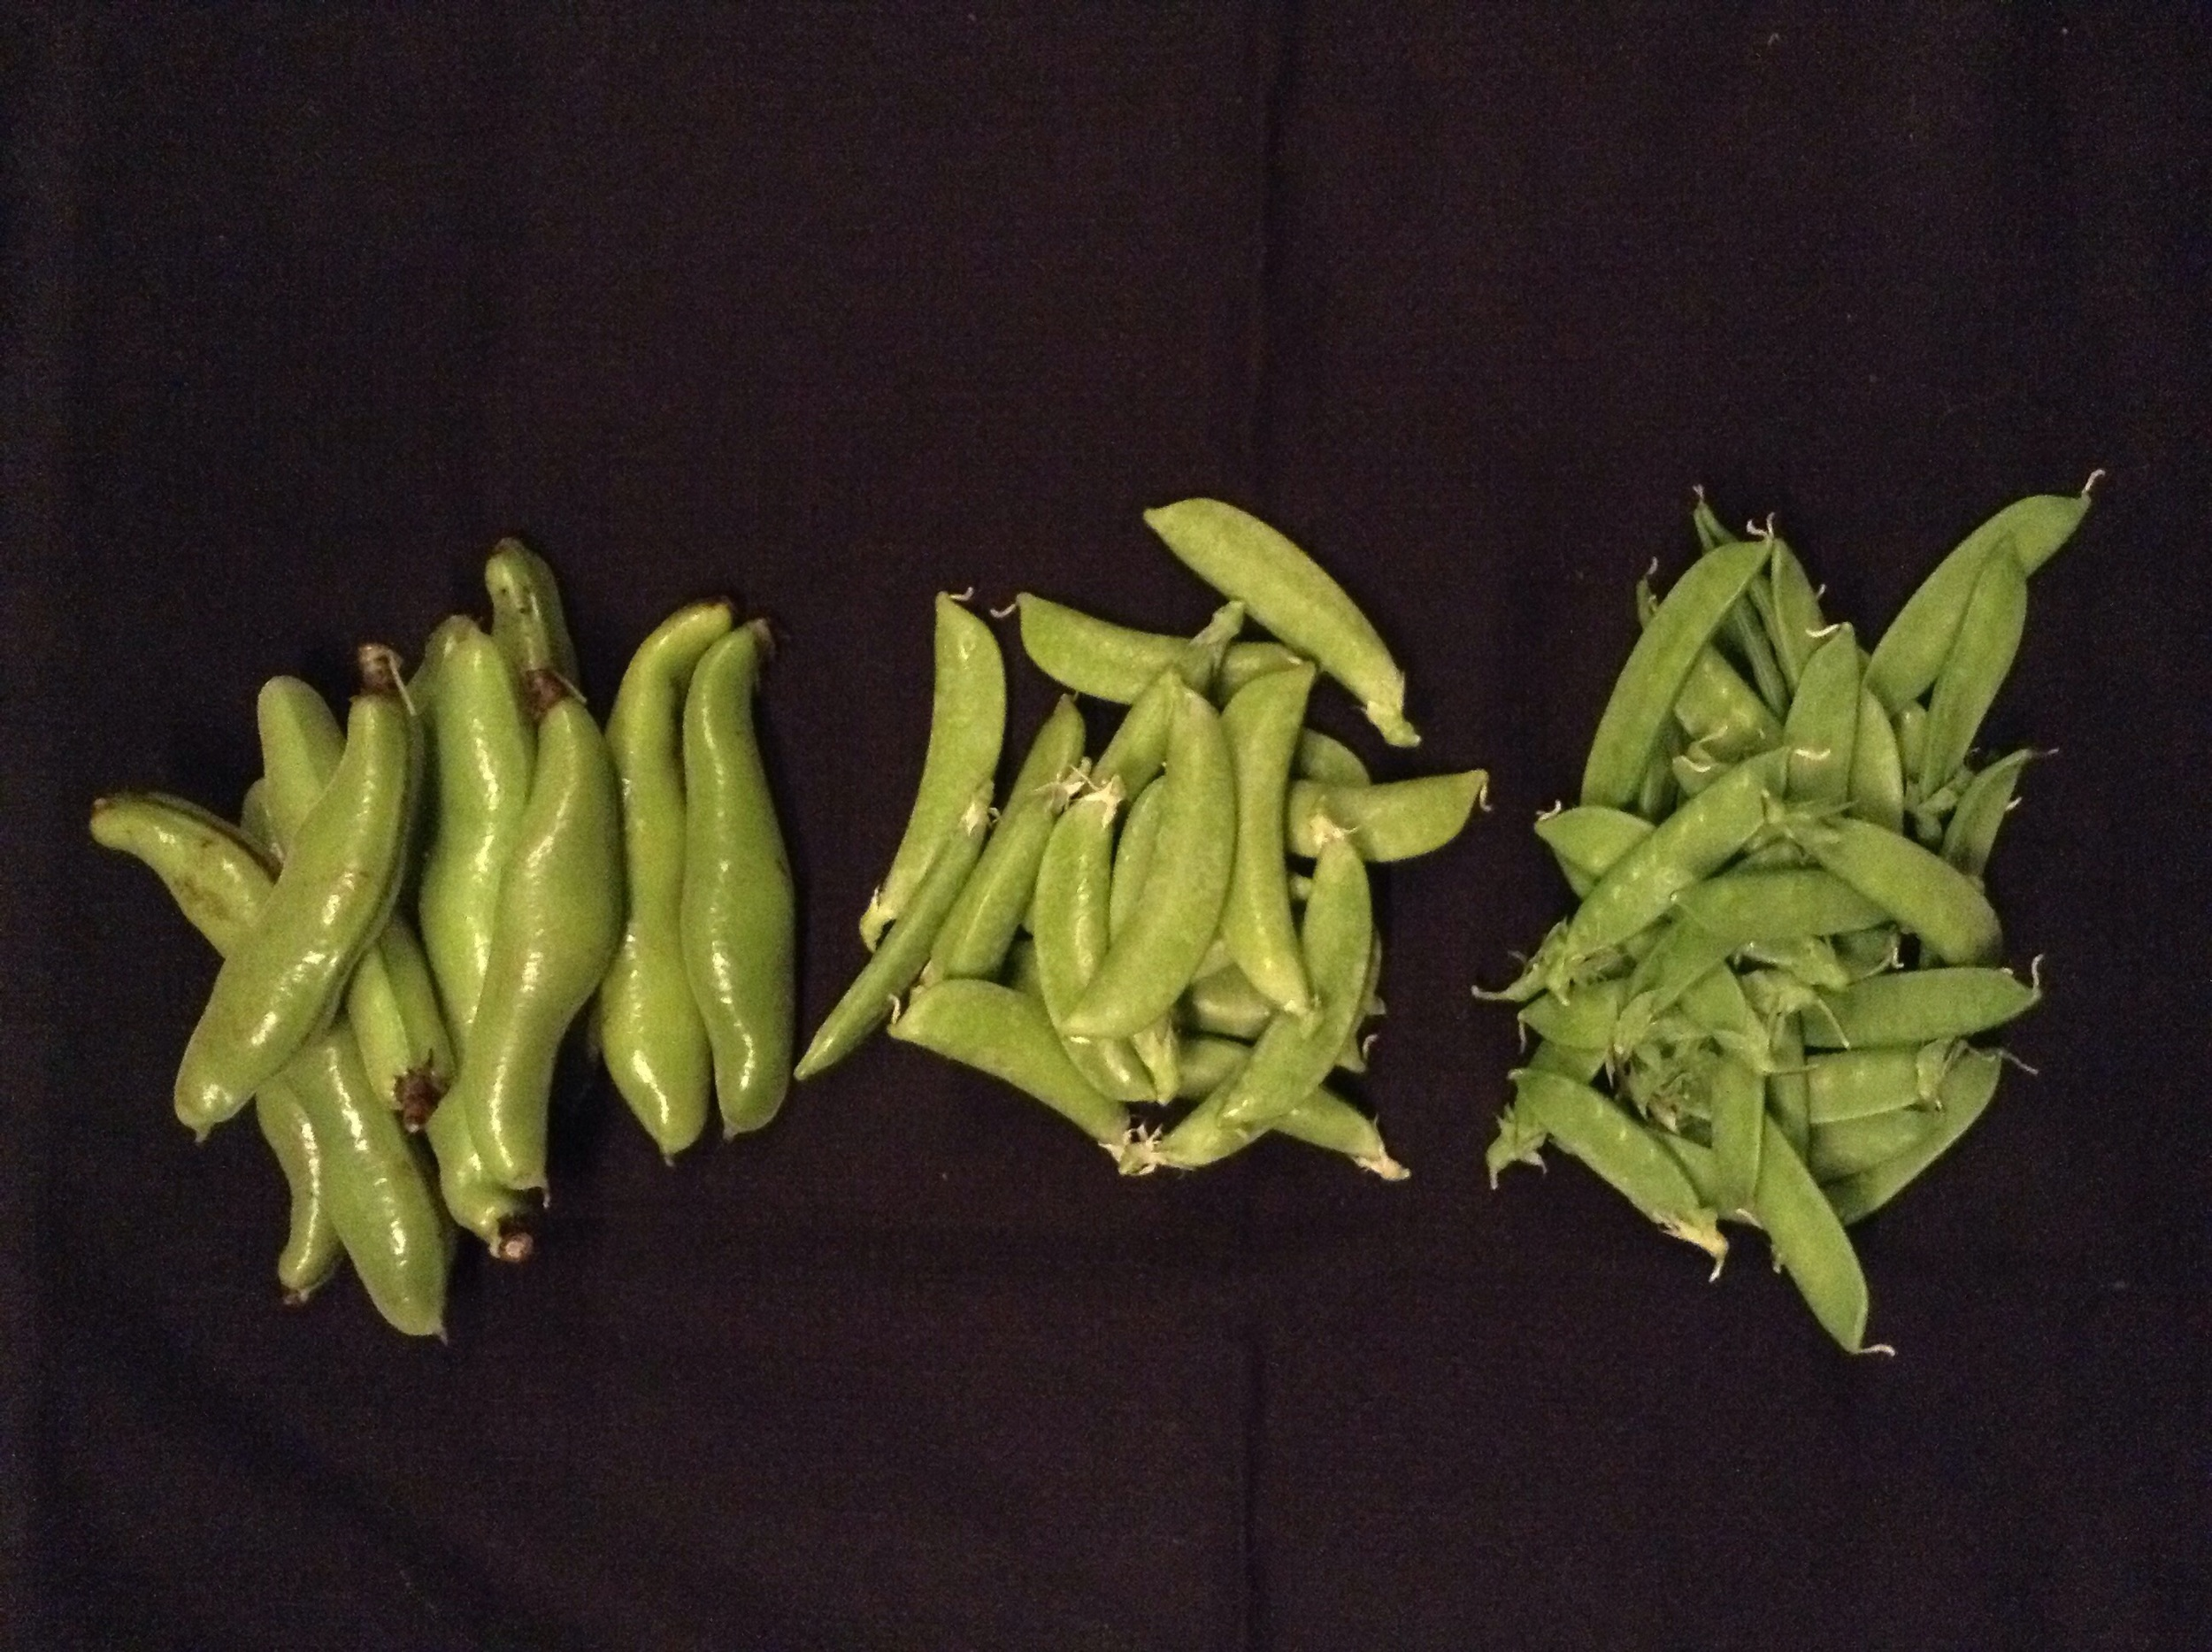 Horse beans and two kinds of snap peas